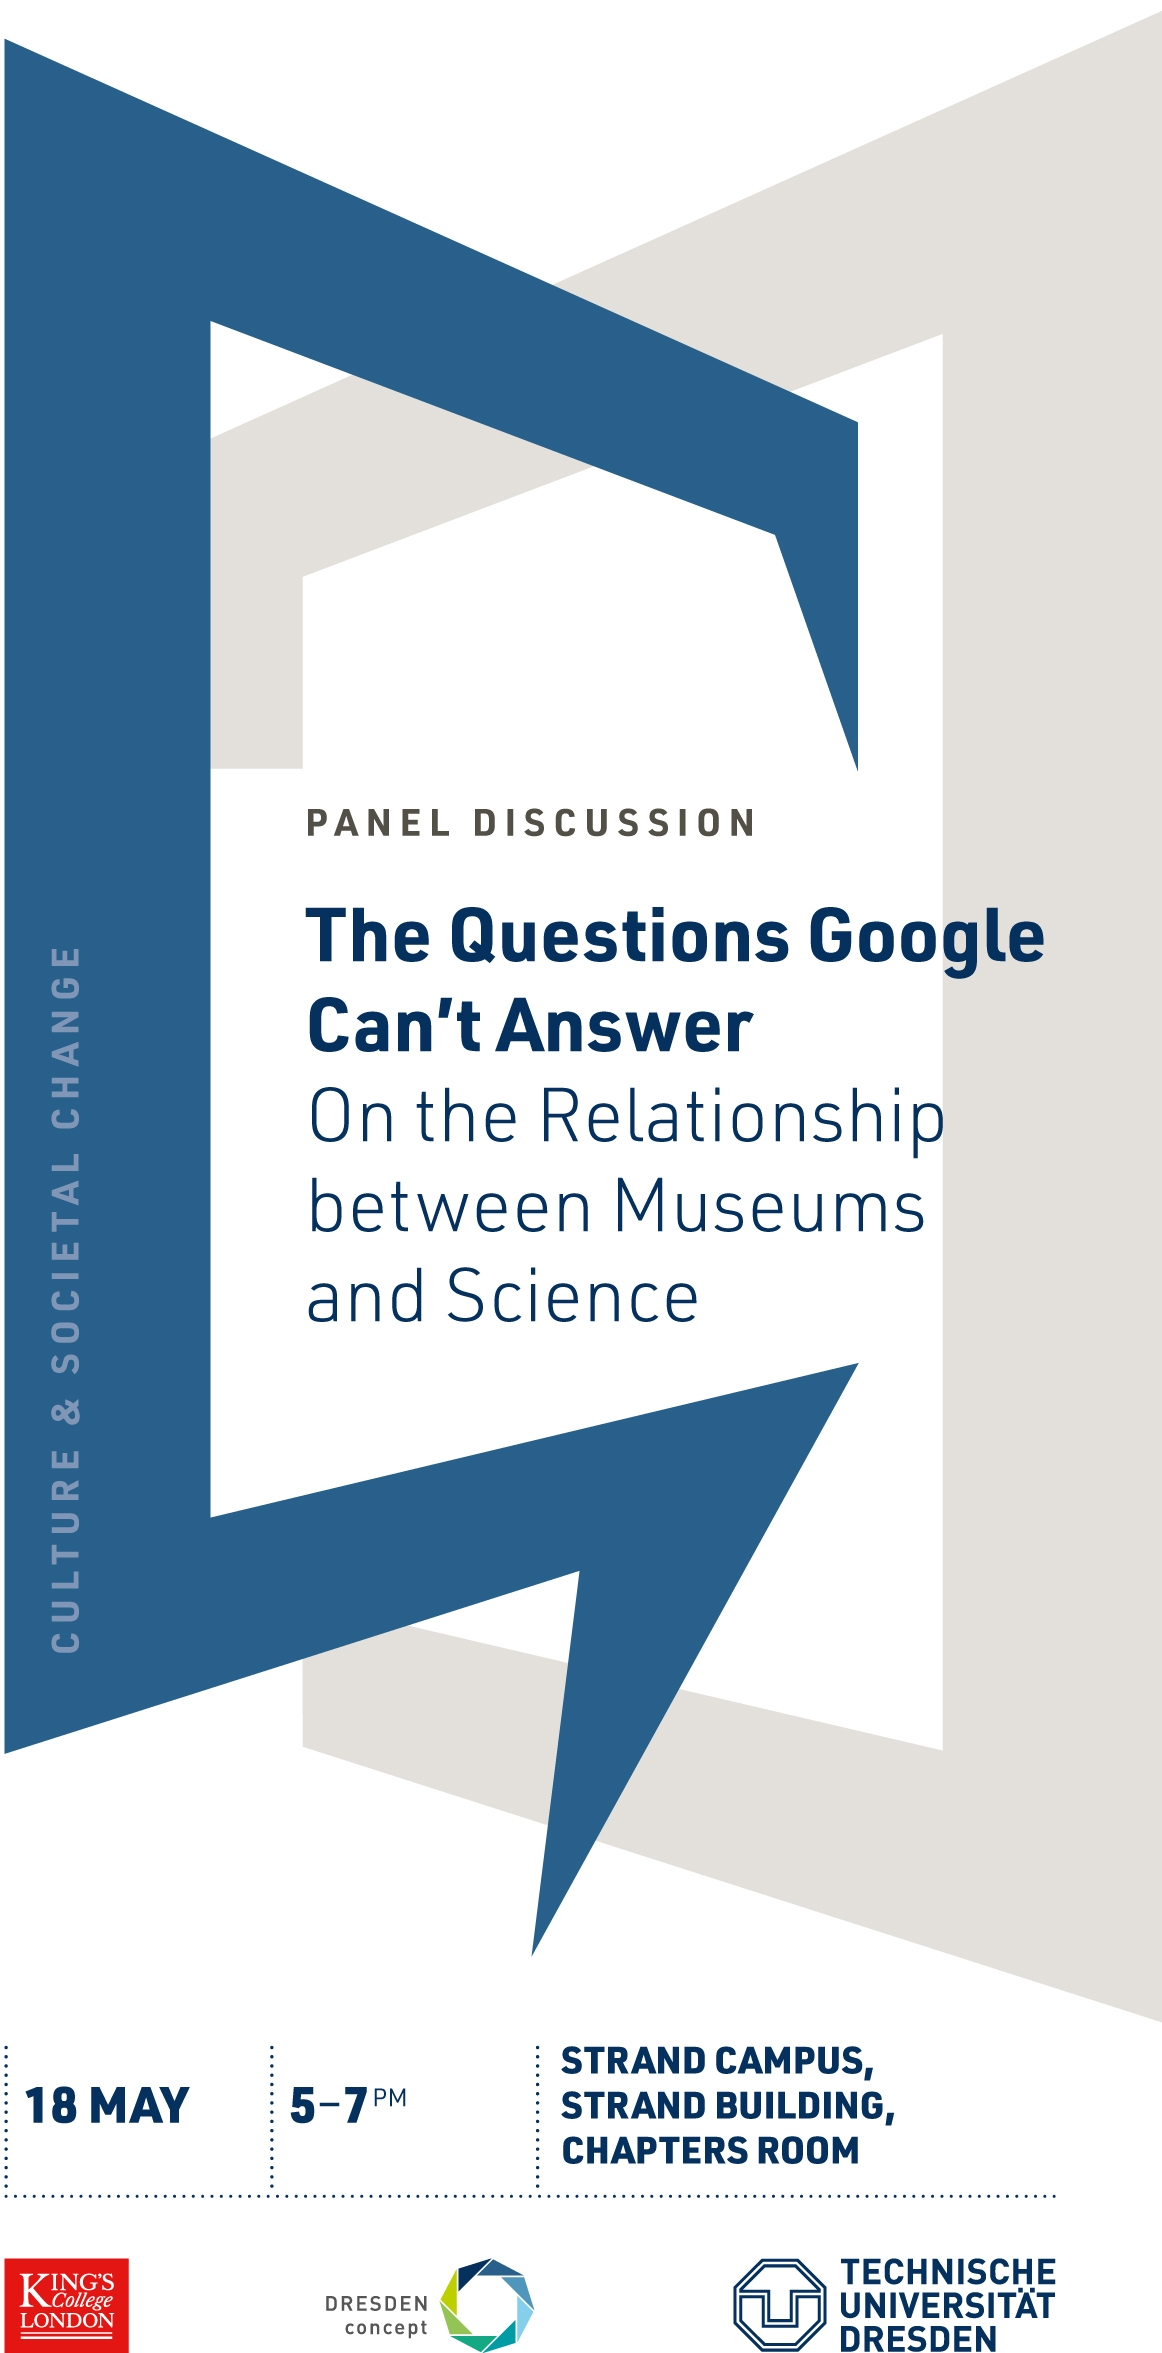 The Questions Google Can't Answer On the Relationship between Museums and Science